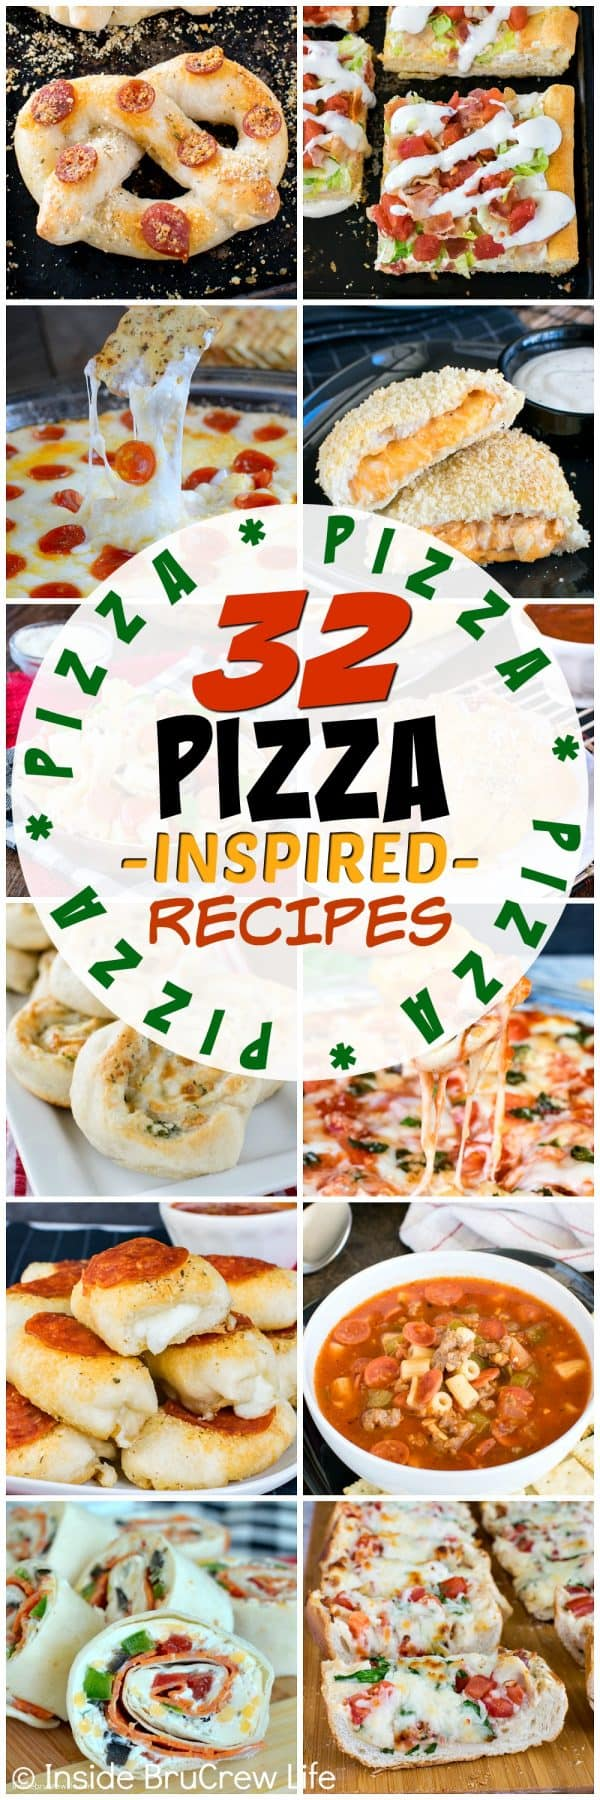 32 Pizza Inspired Recipes - 32 different appetizers, dinners, and snacks that are loaded with pizza toppings. Great recipes for game day parties!